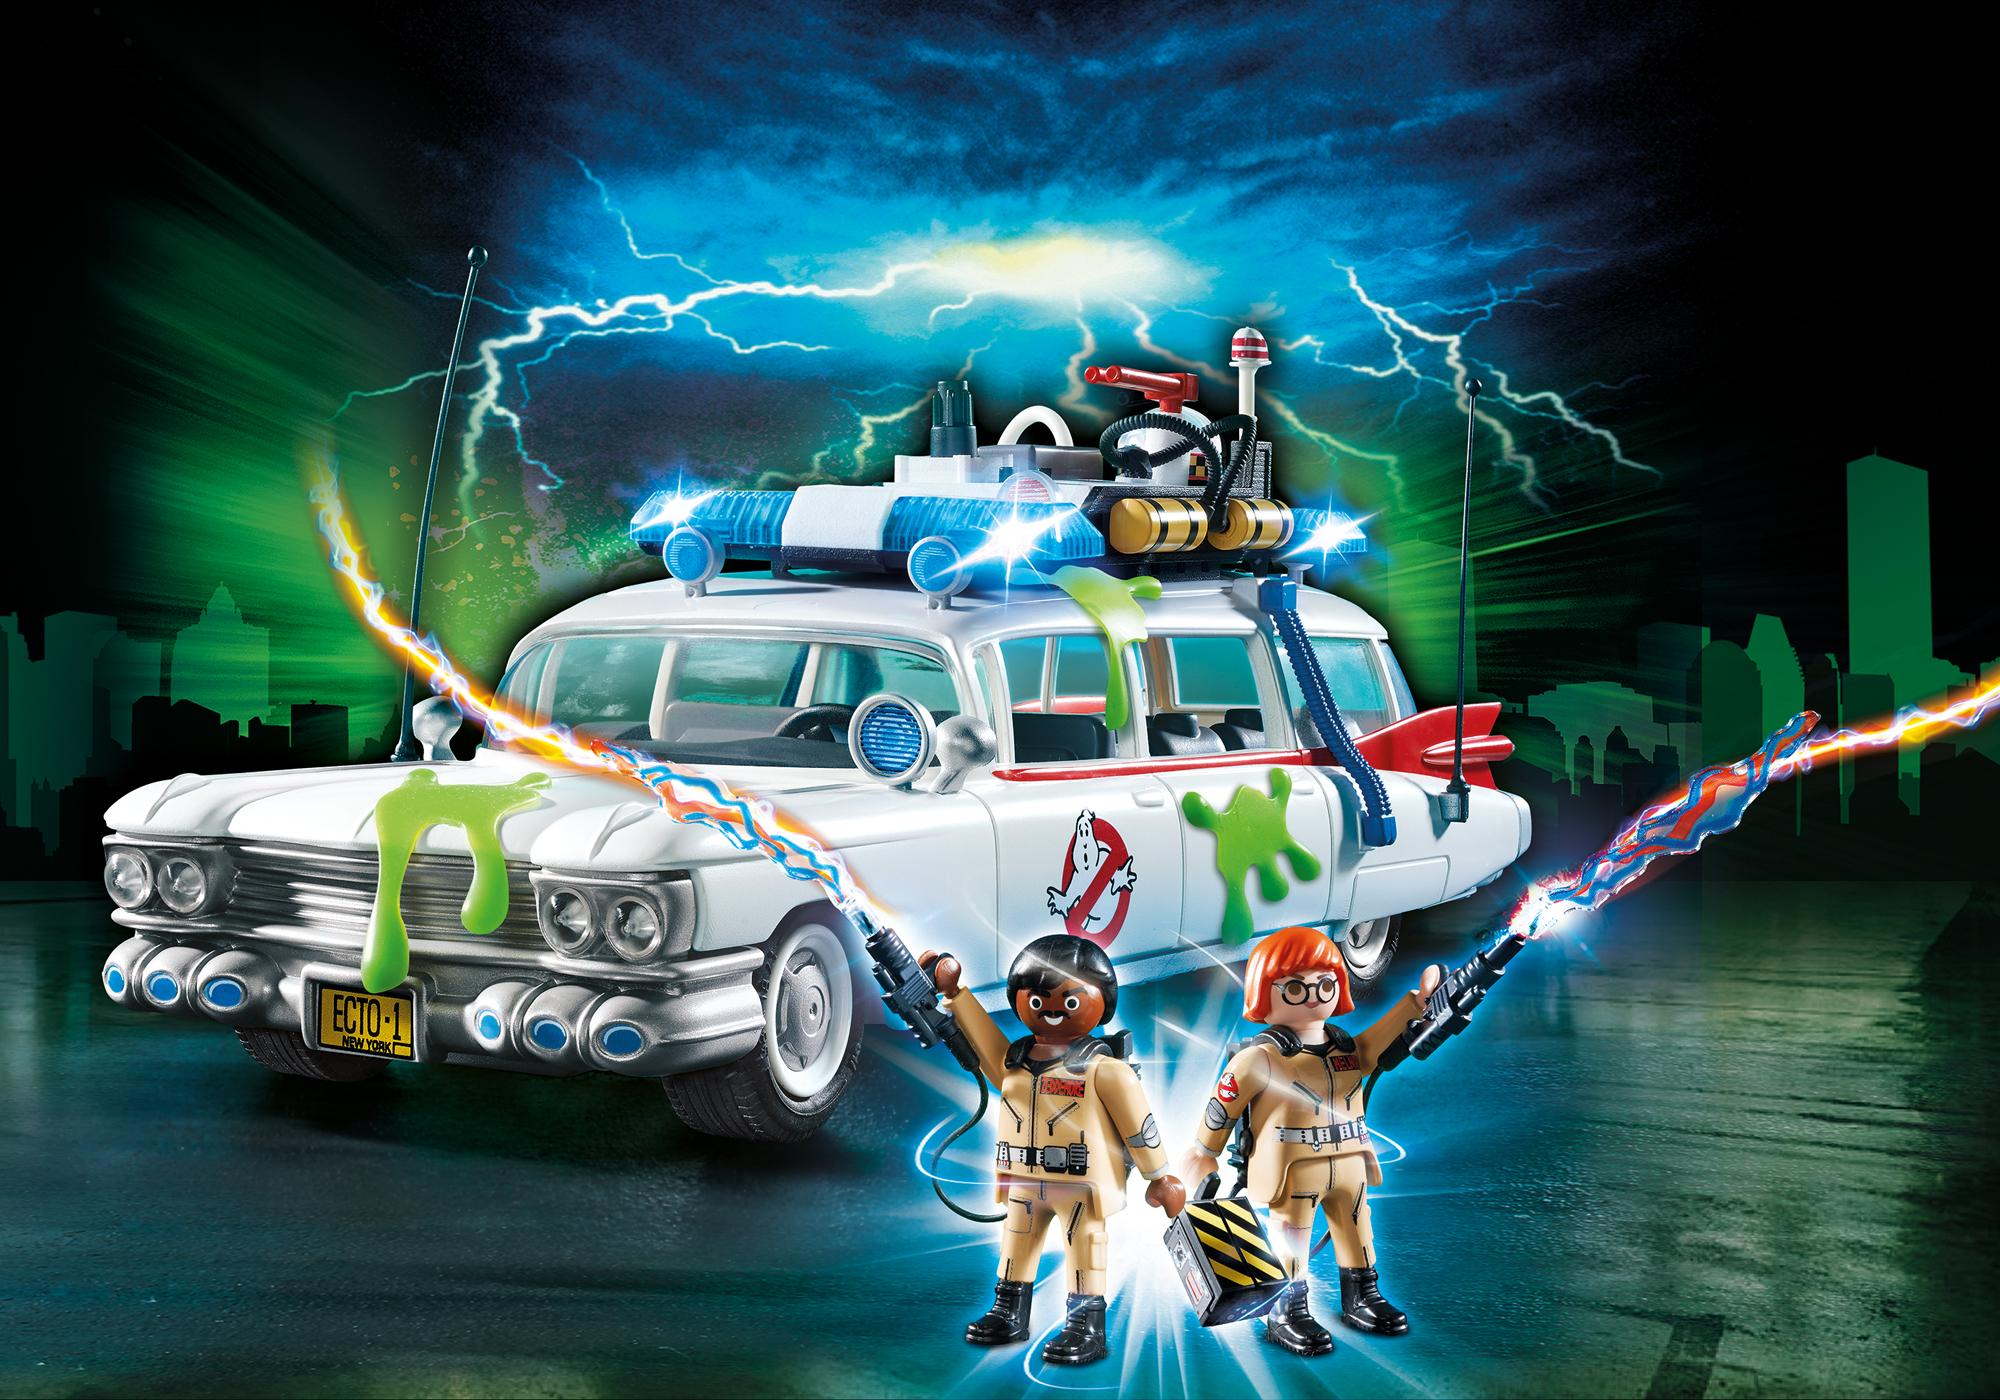 9220_product_detail/Ecto-1 Ghostbusters